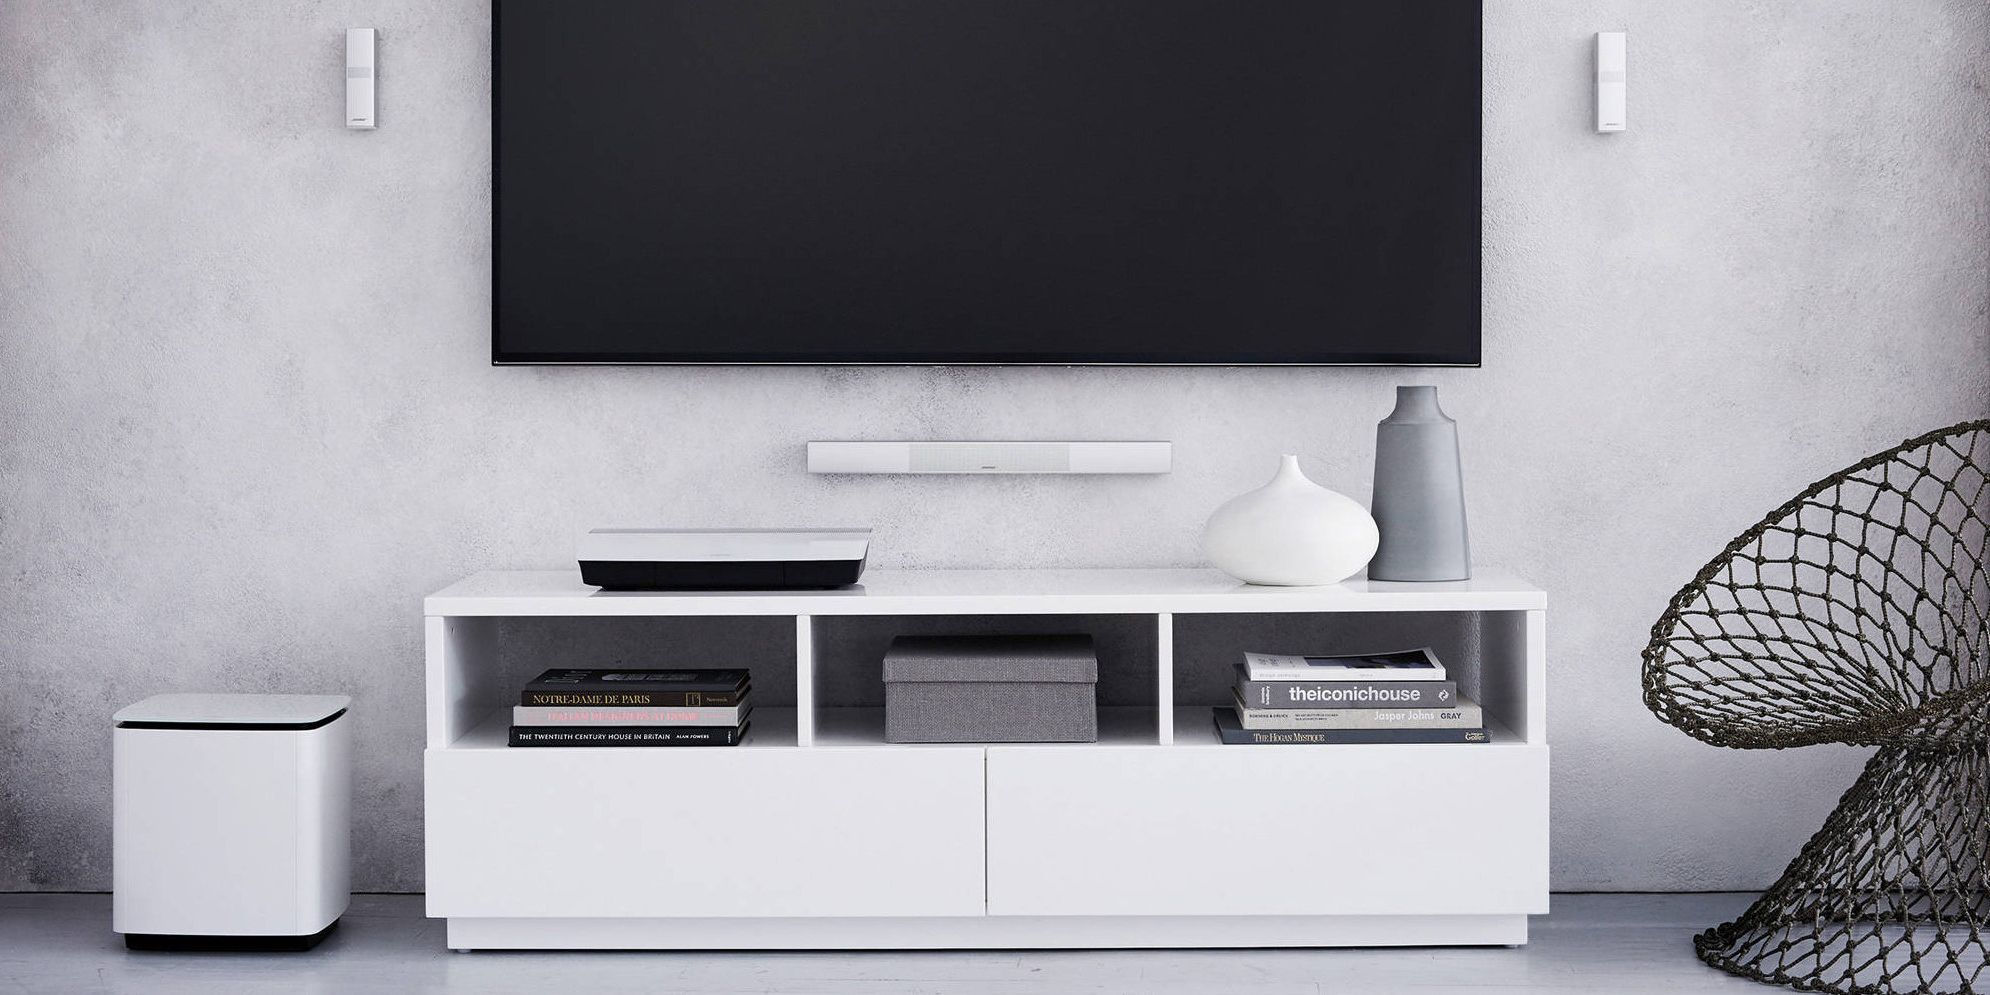 hight resolution of home theater speaker systems are here to give you an immersive tv experience